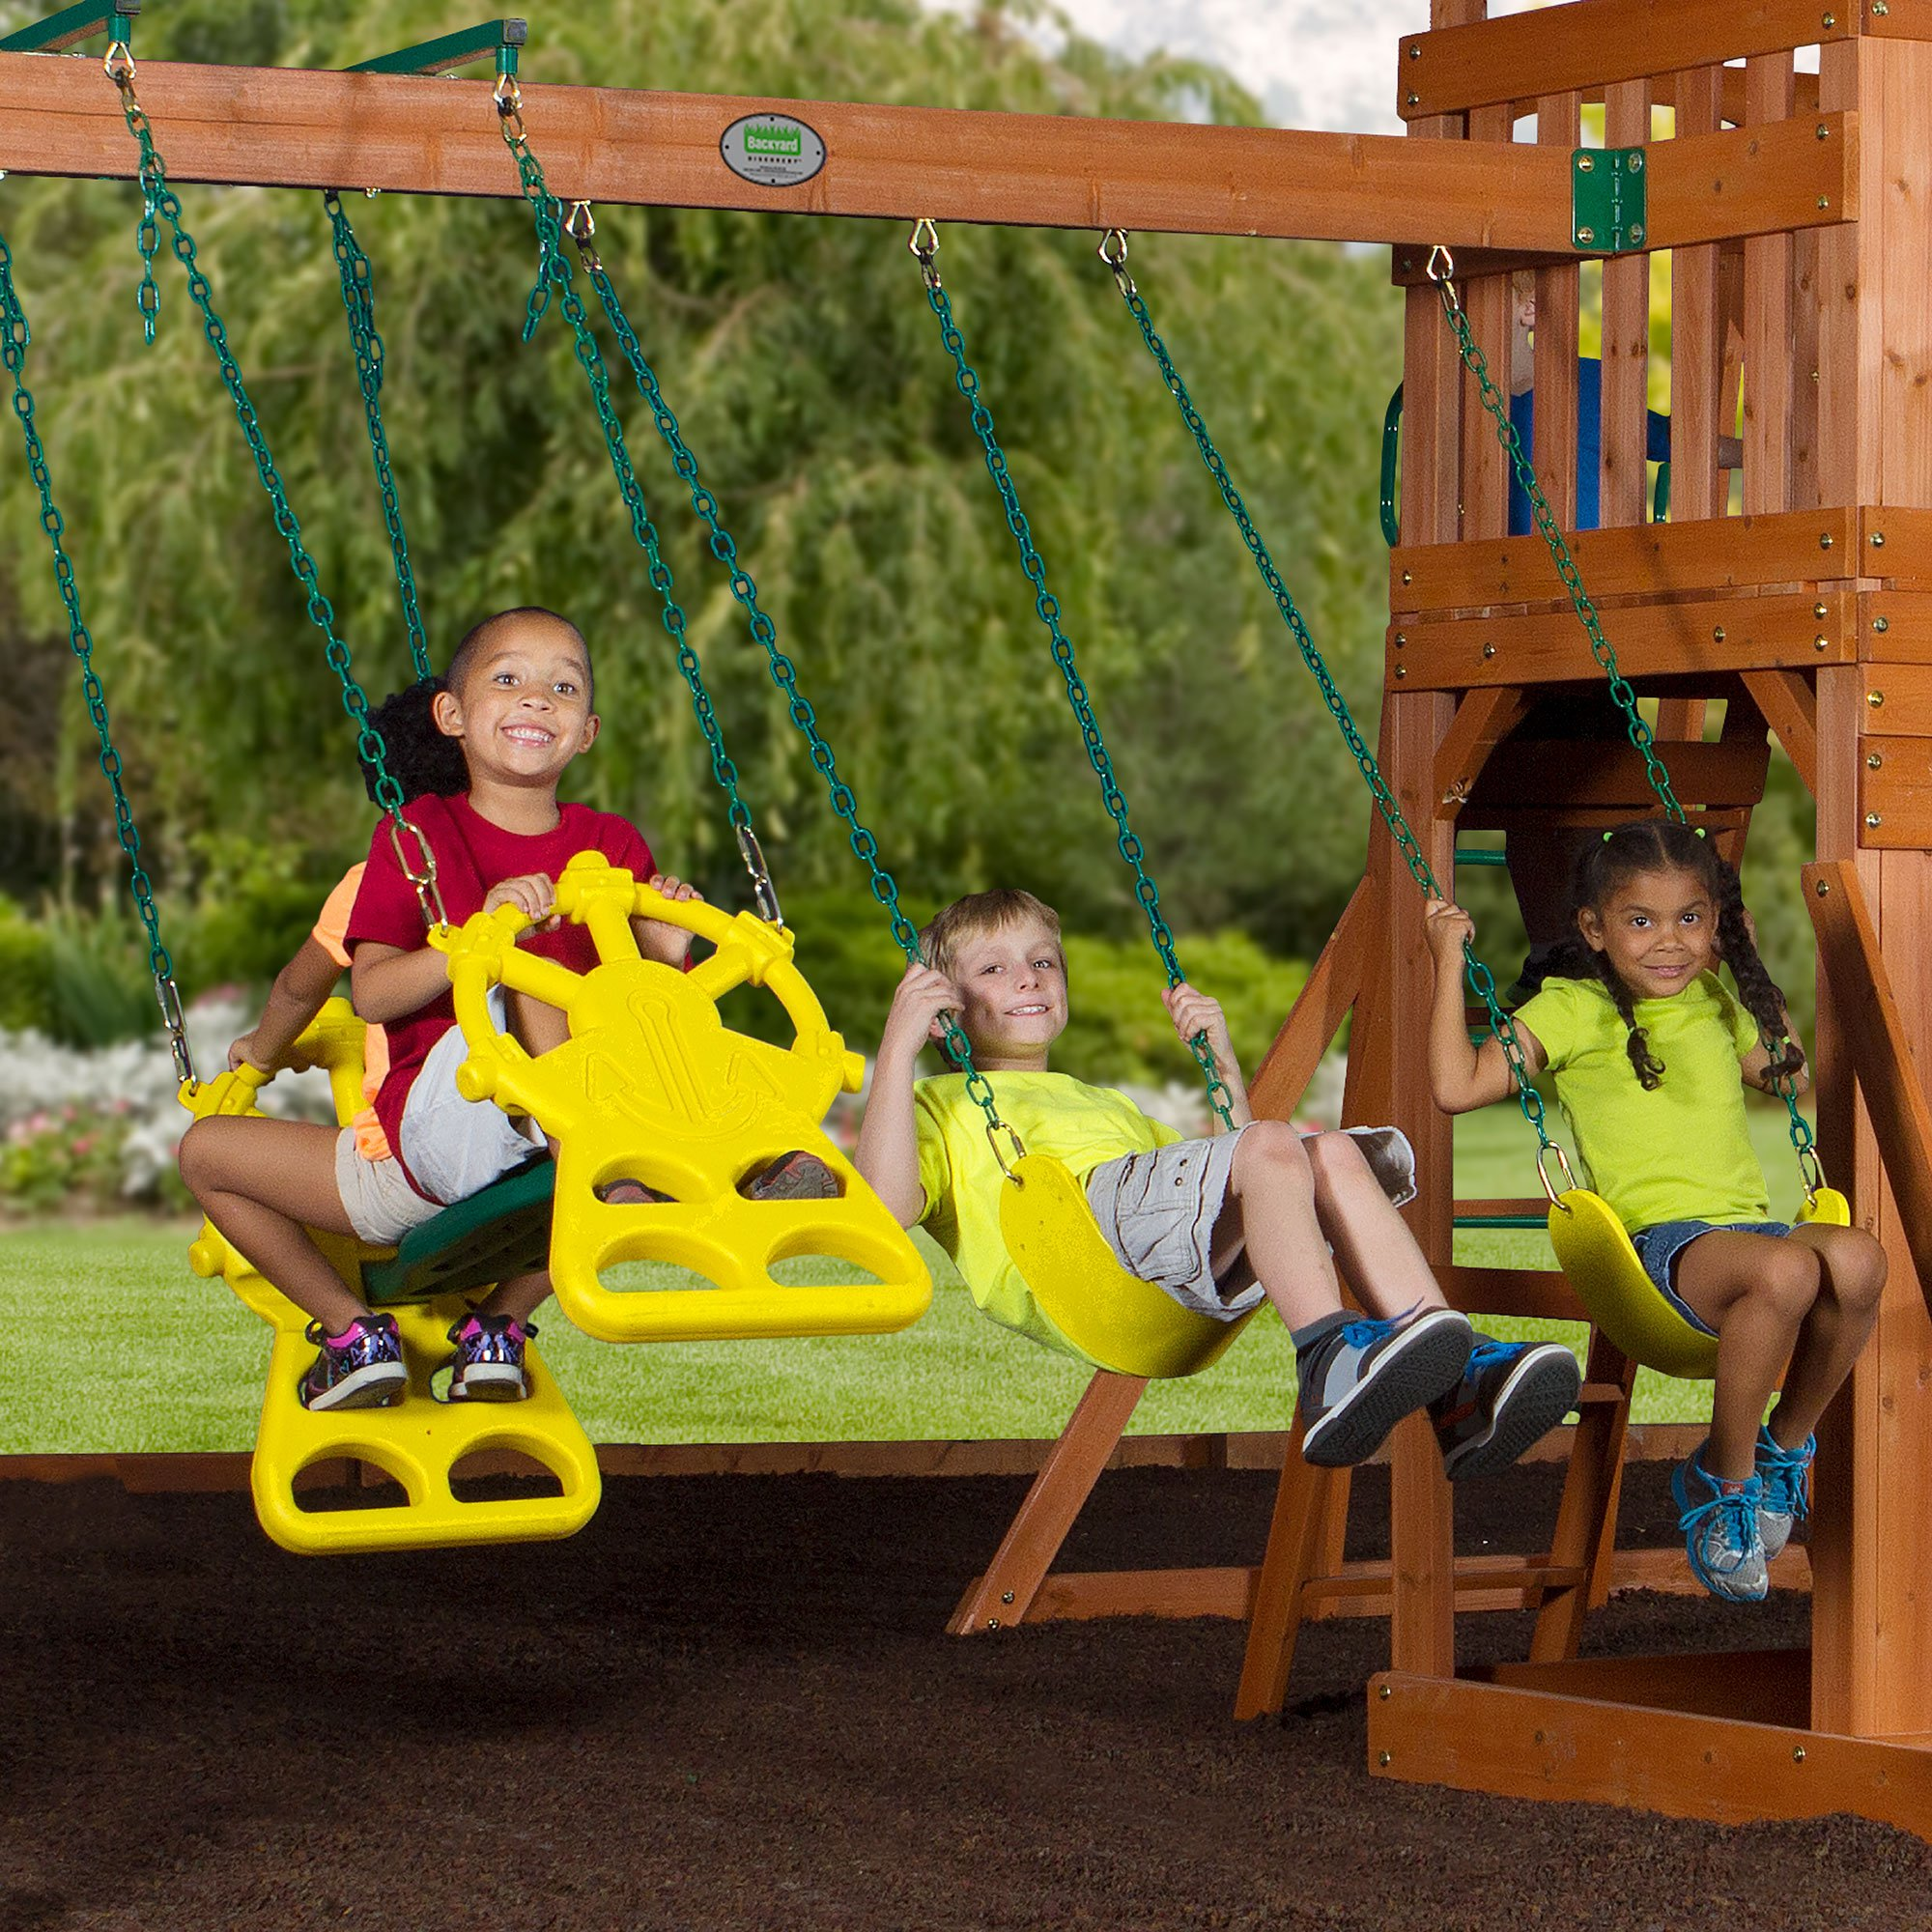 Backyard Discovery Thunder Ridge All Cedar Wood Playset Swing Set by Backyard Discovery (Image #3)